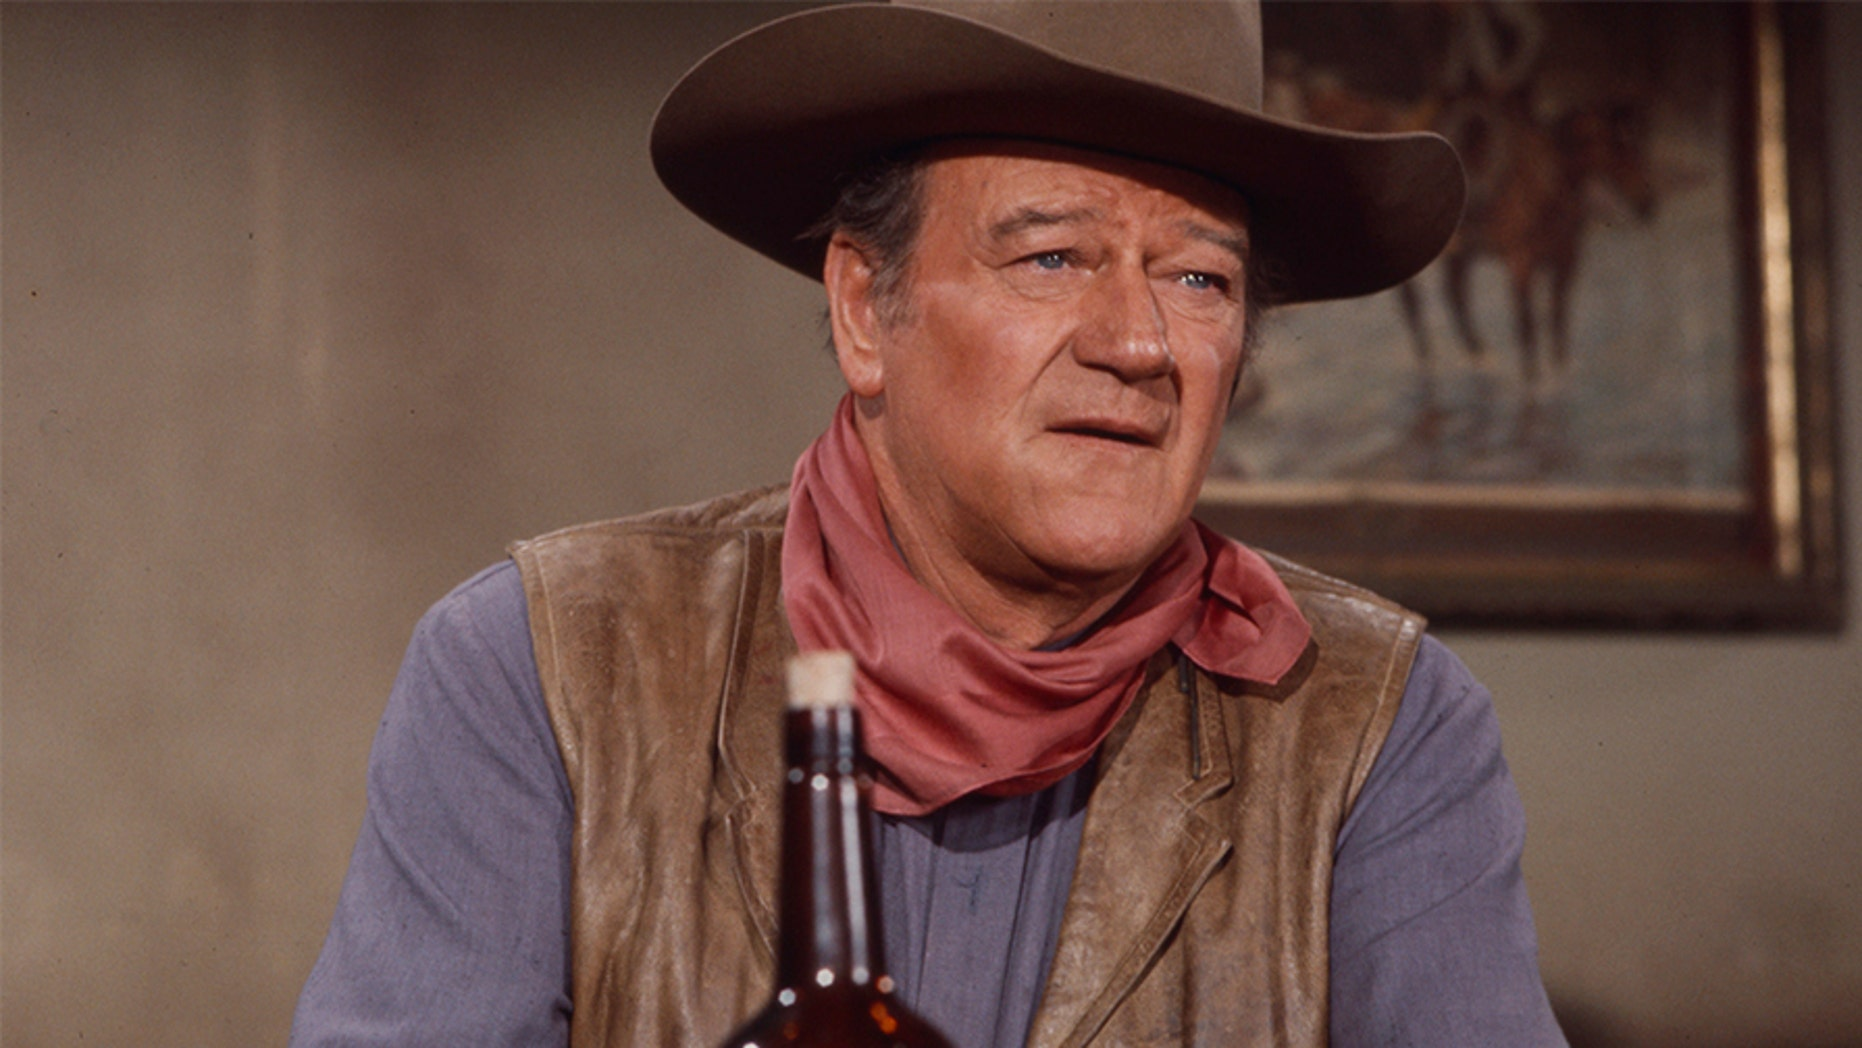 John Wayne, a movie legend who died nearly 40 years ago, has an airport named after him in Southern California. But some say the star, shown in 1970, doesn't deserve the tribute because of some past comments. (Getty Images)